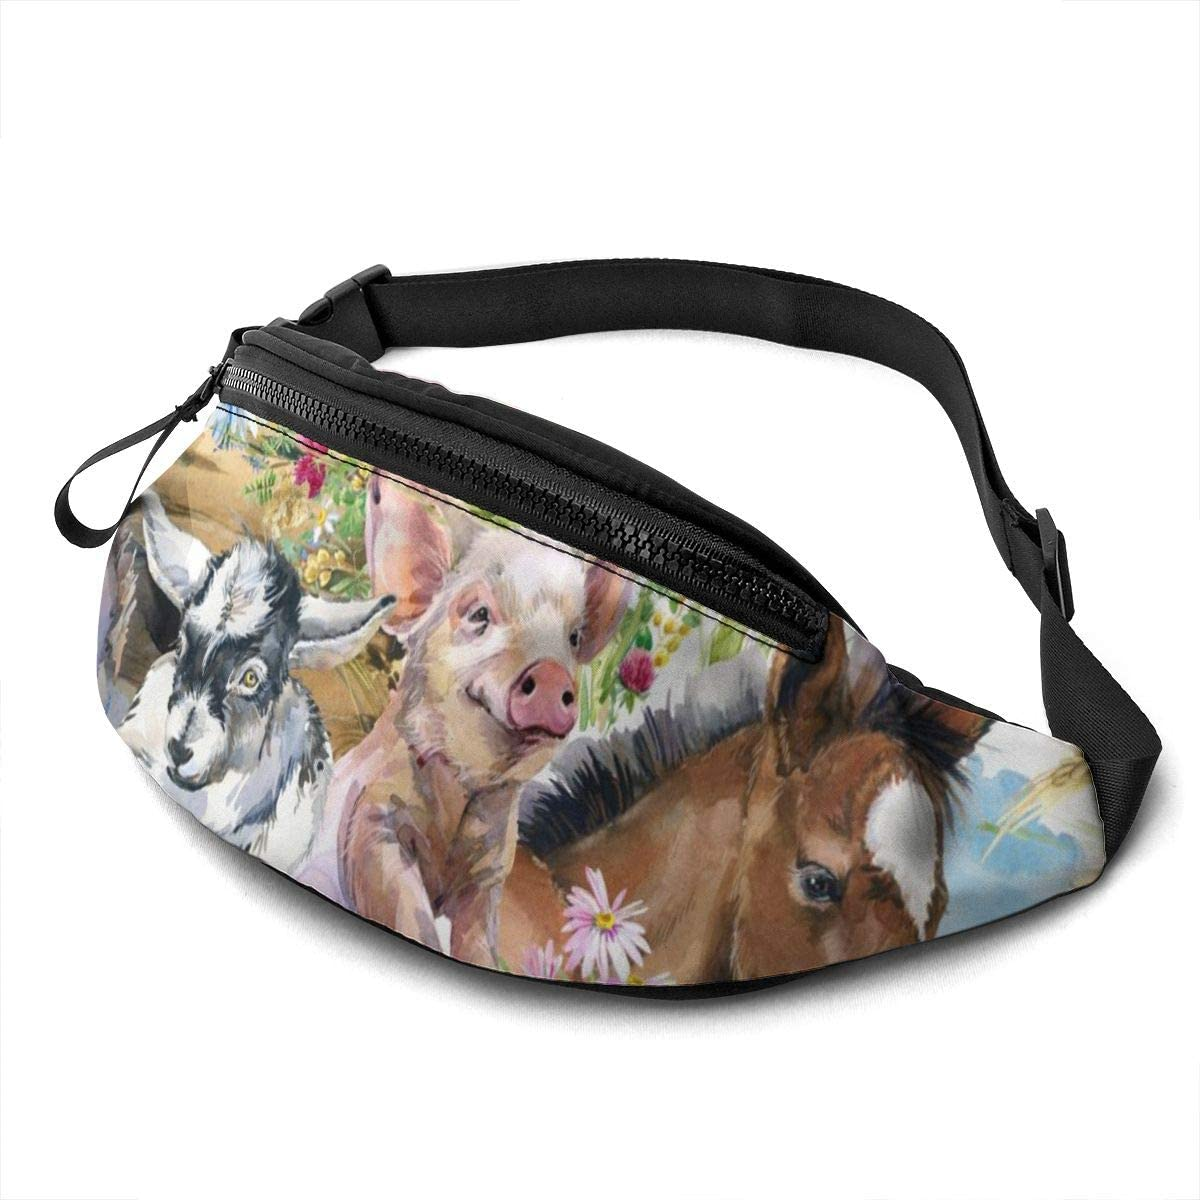 Dujiea Fanny Pack, Farm Animals Waist Bag with Headphone Hole Belt Bag Adjustable Sling Pocket Fashion Hip Bum Bag for Women Men Kids Outdoors Casual Travelling Hiking Cycling